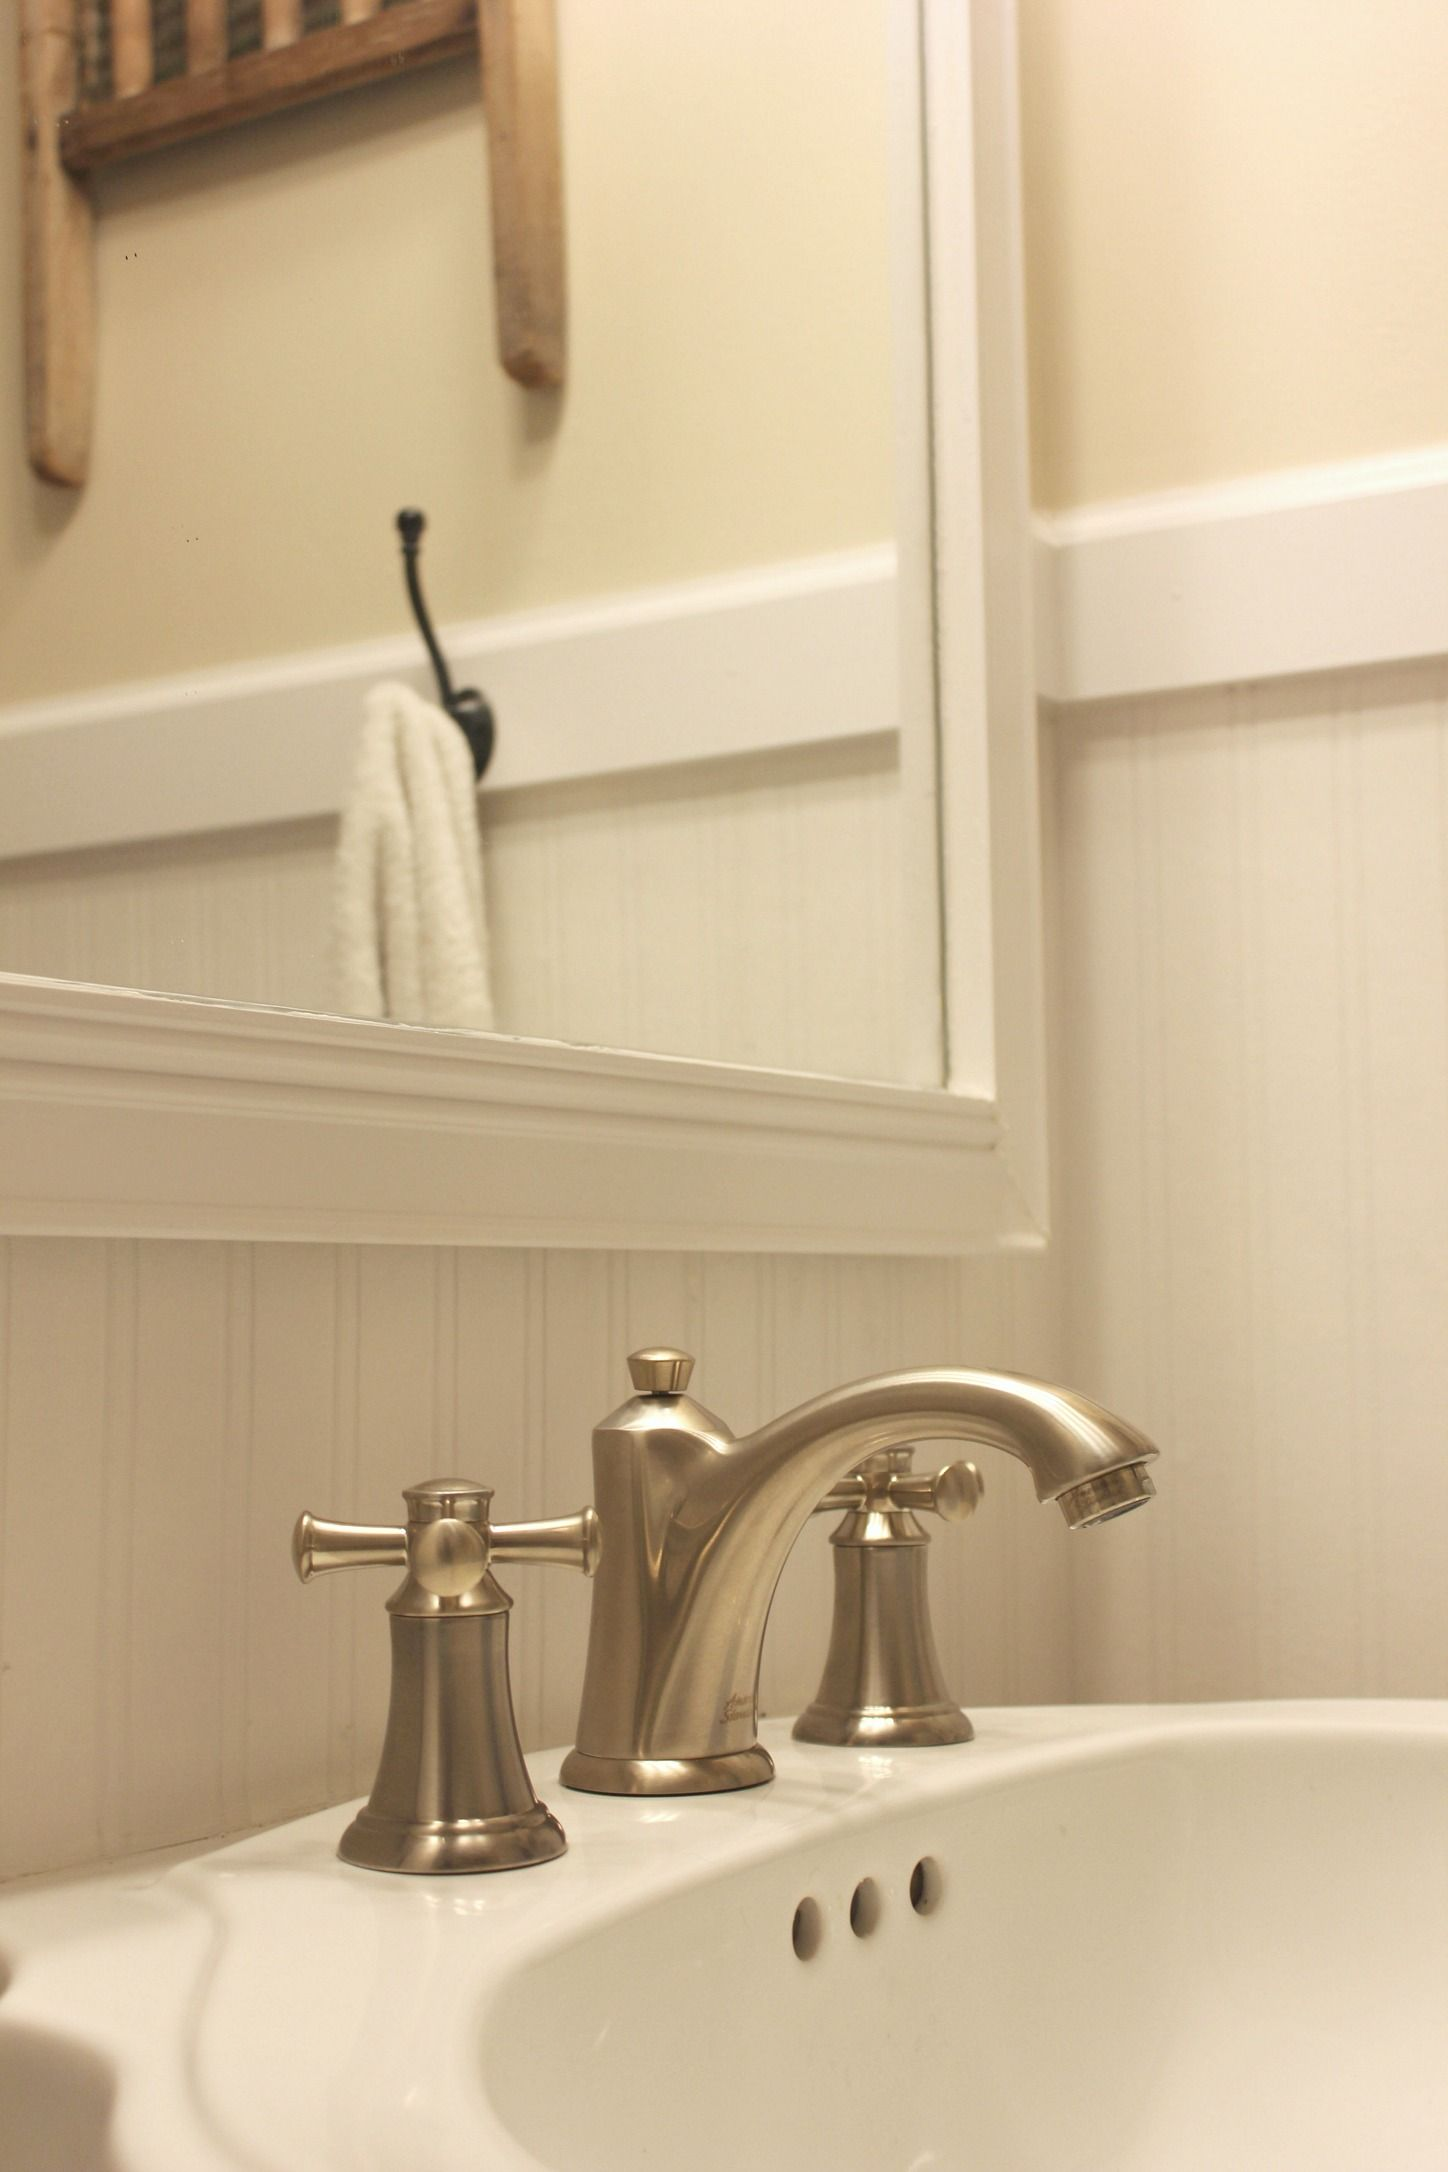 Check out this bathroom farmhouse style facelift and enter to win a brand new American Standard bathroom faucet set at In The New House Designs.